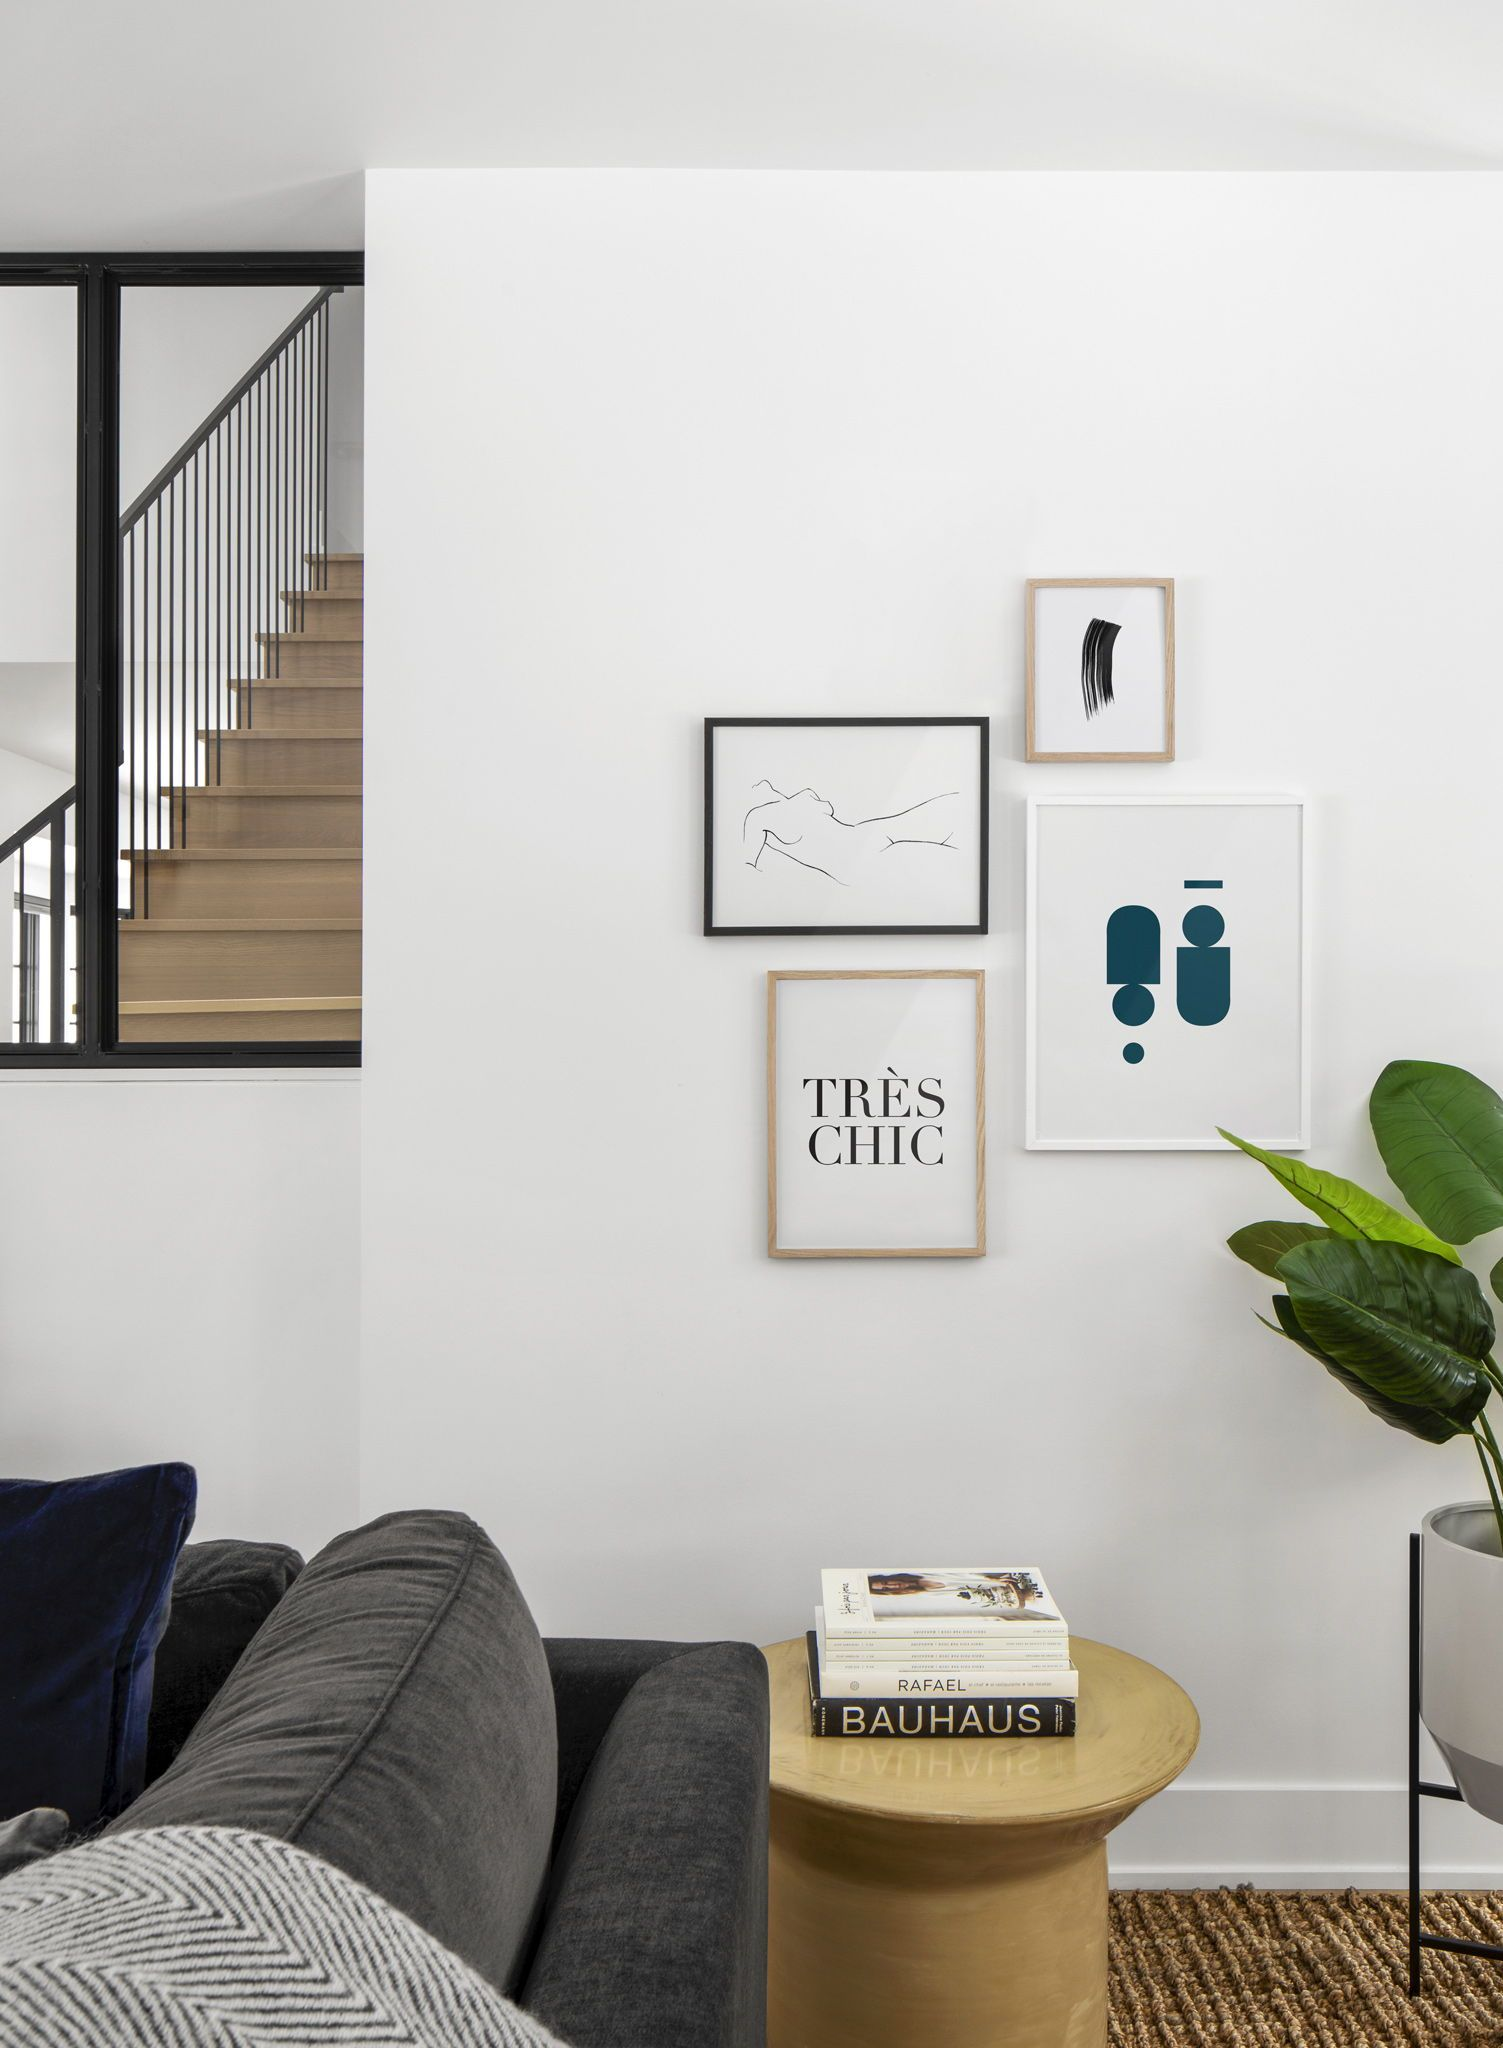 Opposite Wall: Art Posters and Frames- Minimalist Wall Art Prints